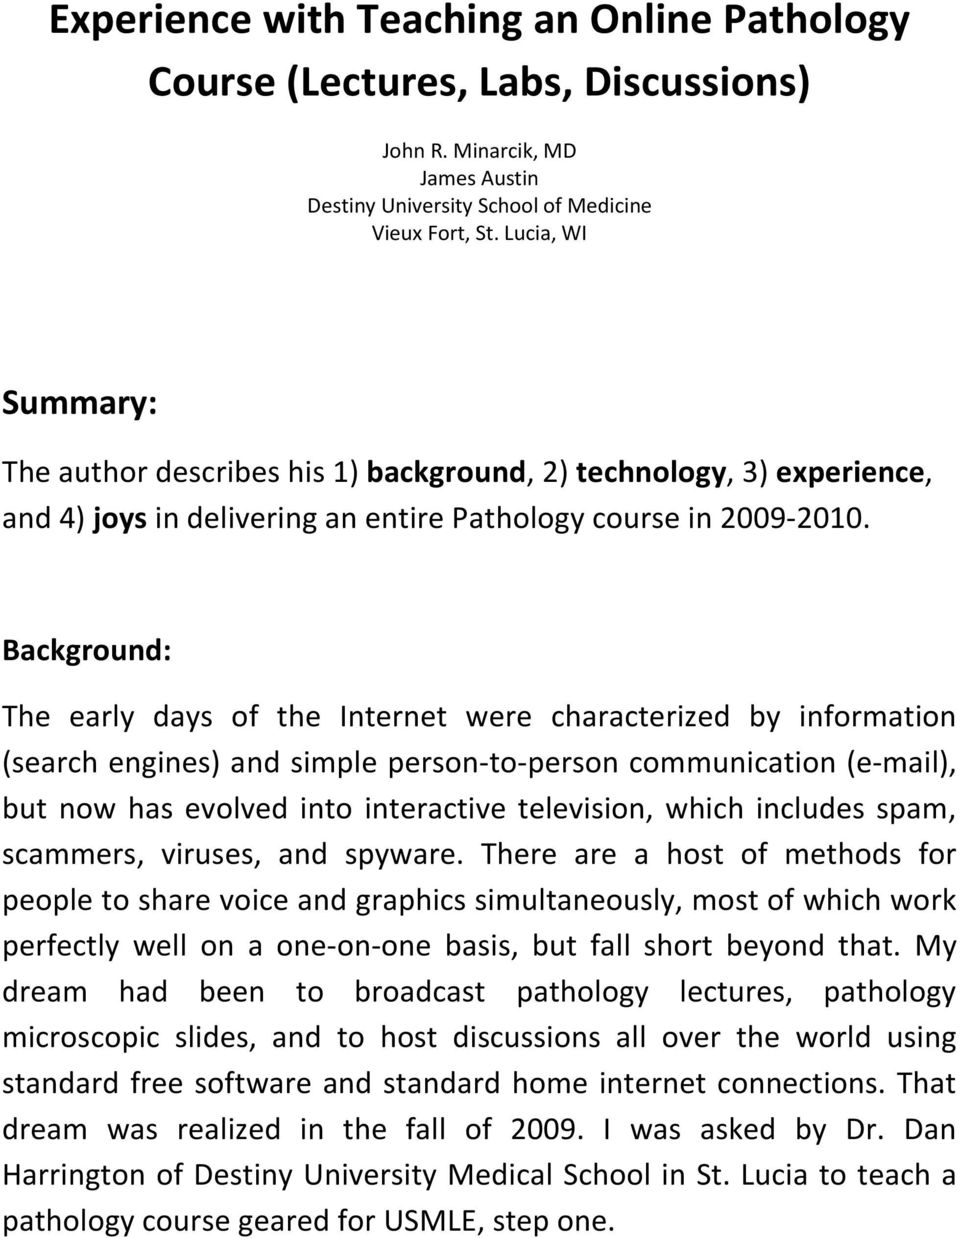 Background: The early days of the Internet were characterized by information (search engines) and simple person-to-person communication (e-mail), but now has evolved into interactive television,